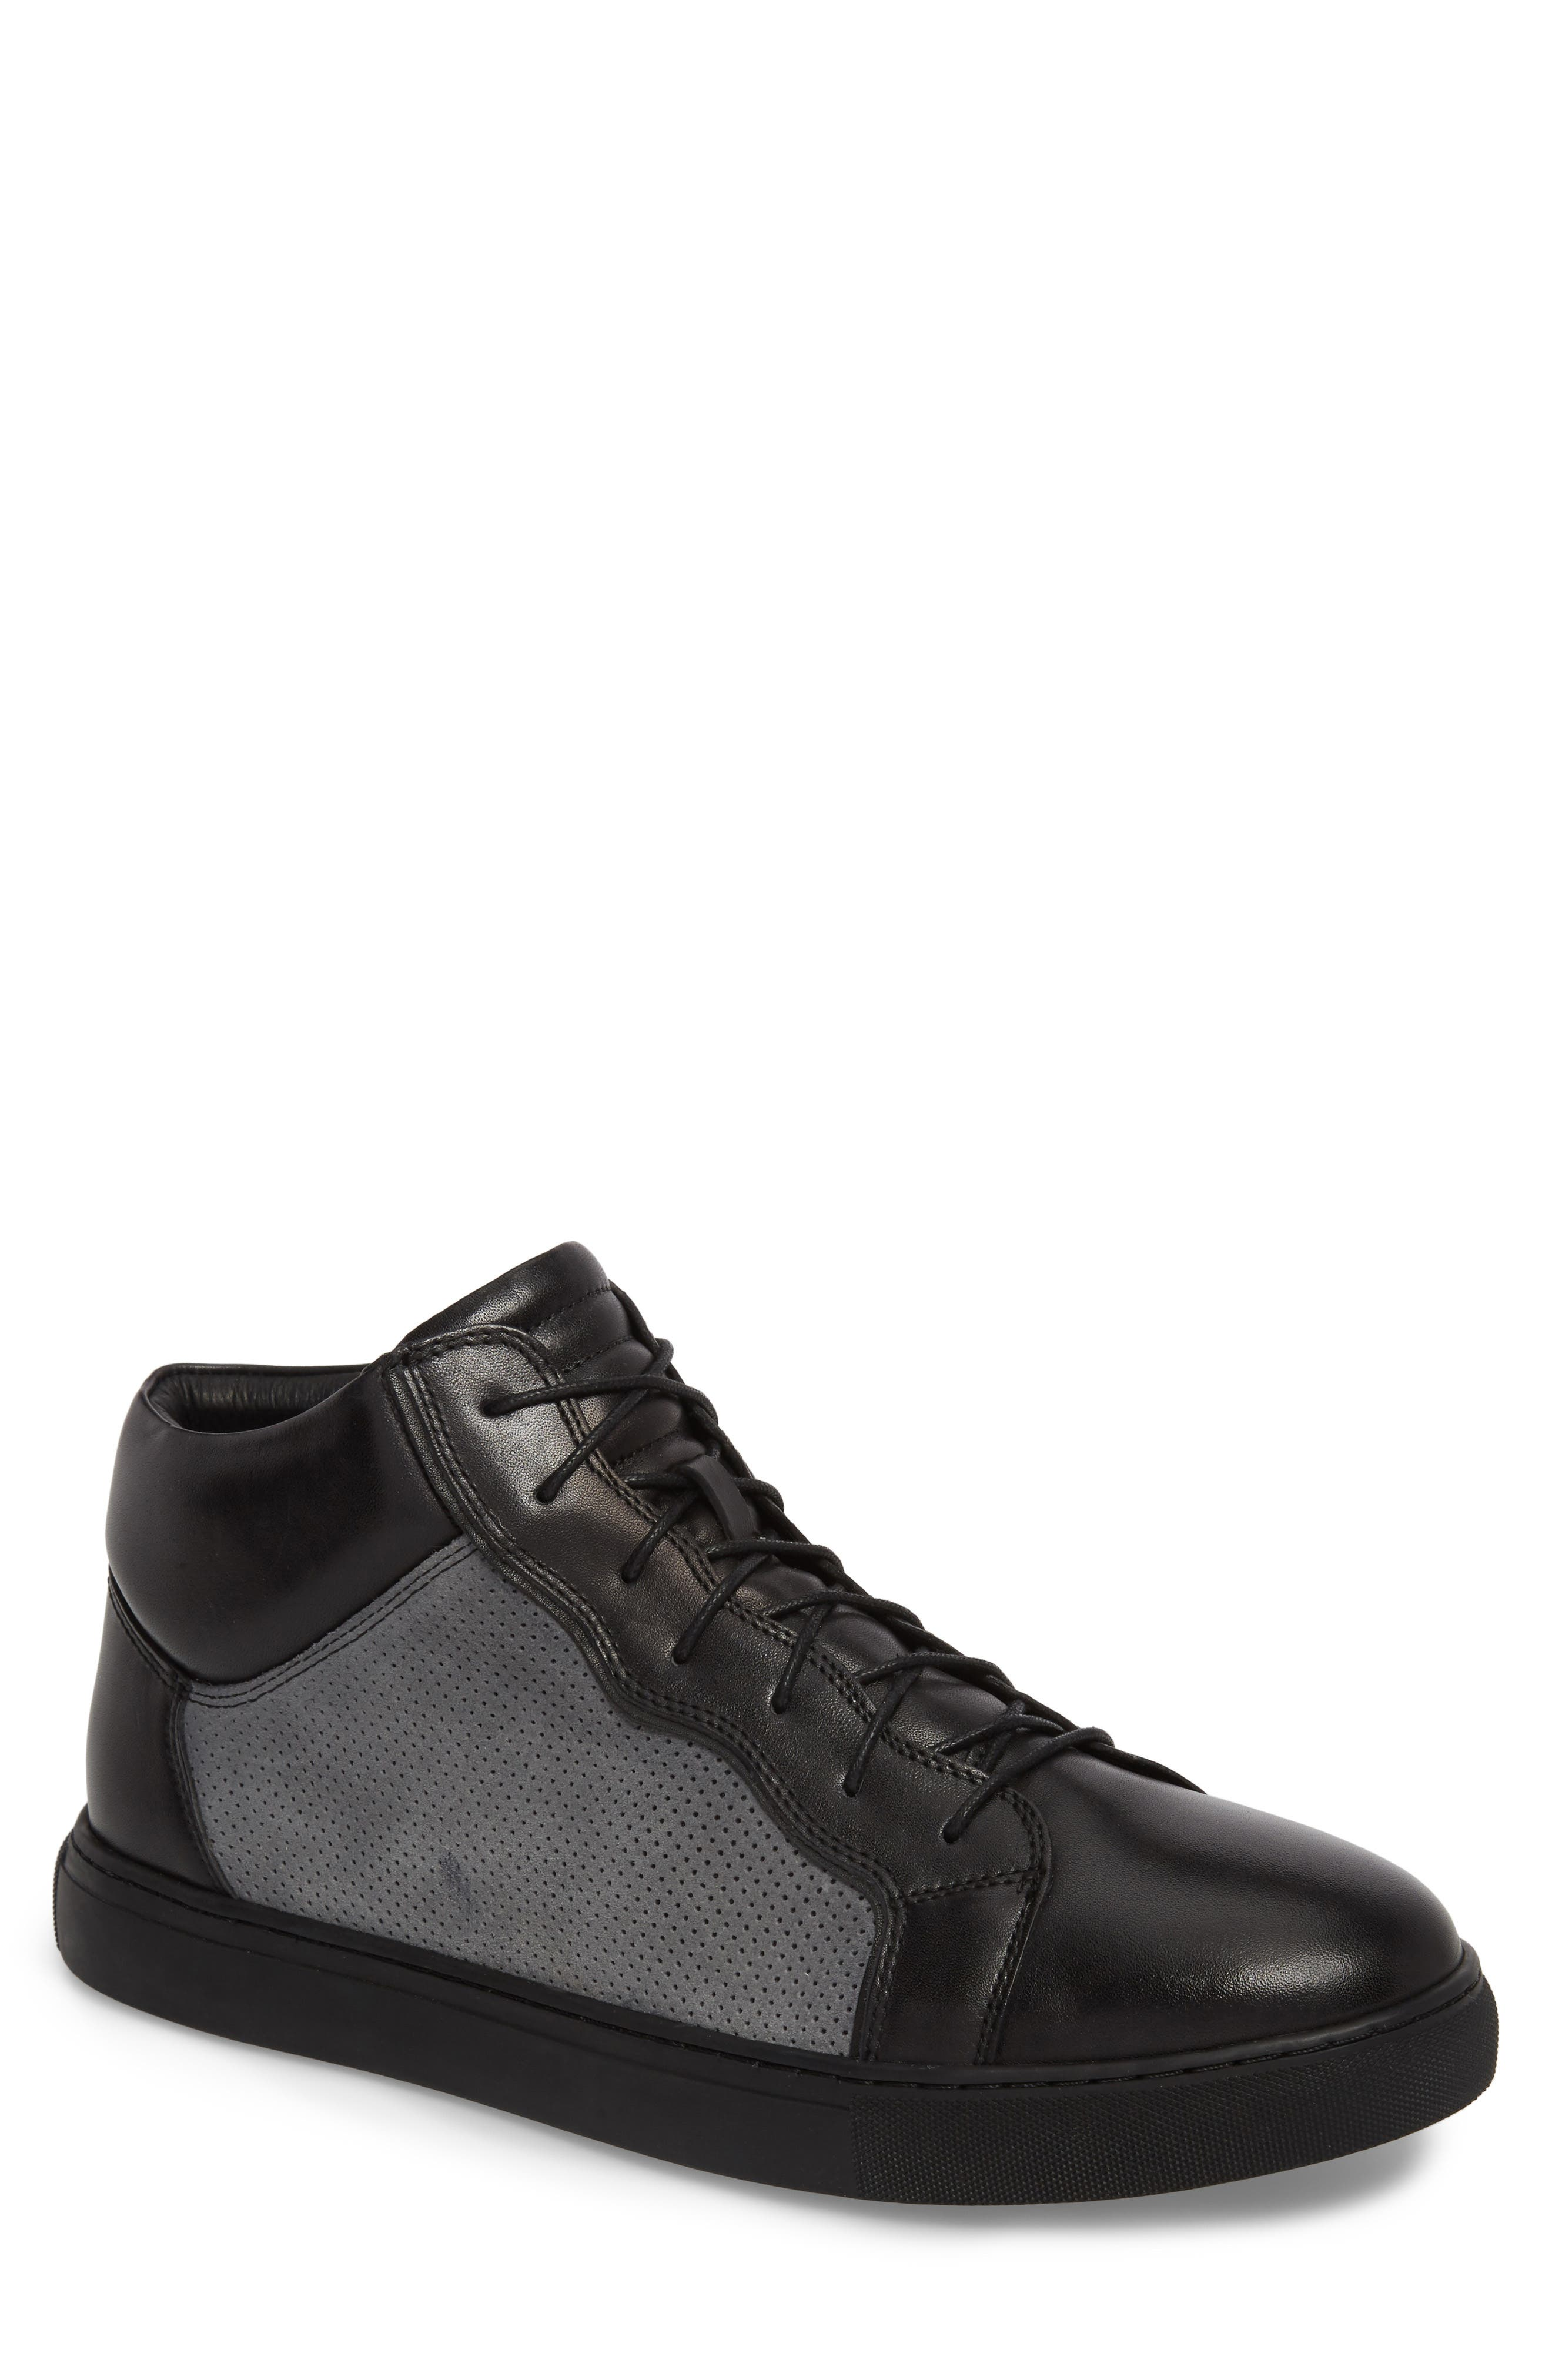 Twist Perforated High Top Sneaker,                             Main thumbnail 1, color,                             BLACK LEATHER/ SUEDE